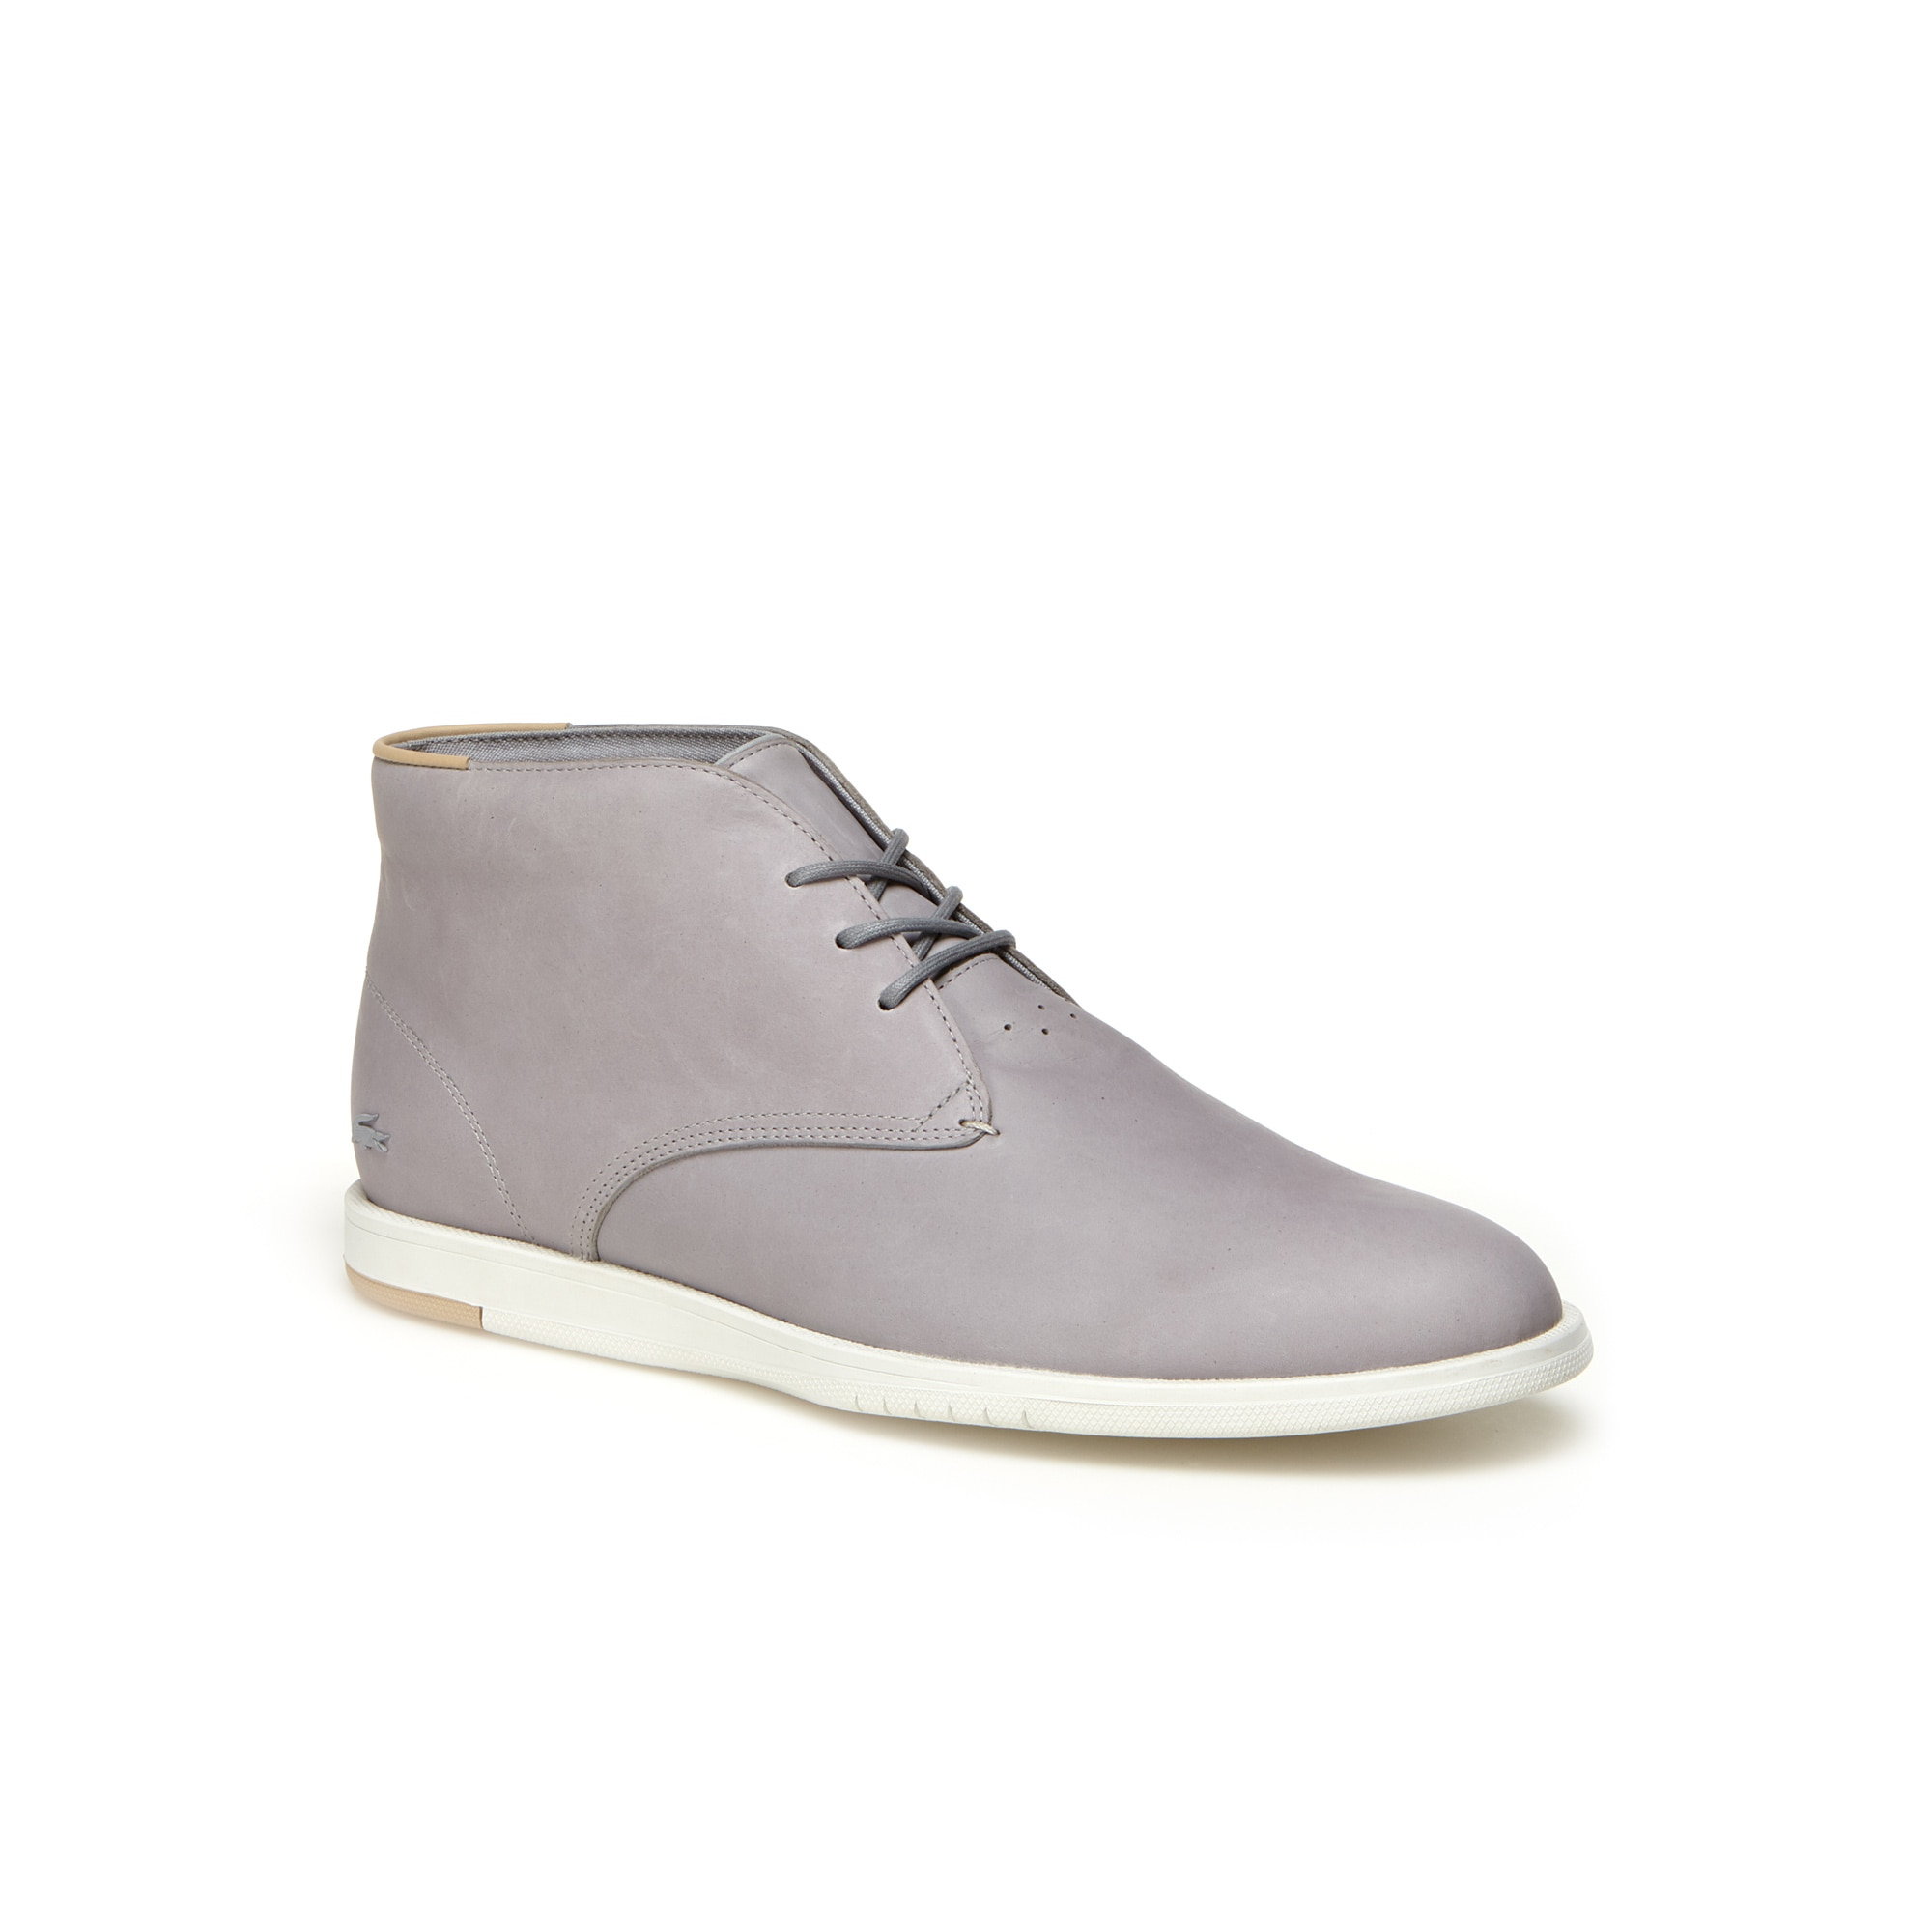 Men's Laccord Chukka Leather Derby Ankle Boots